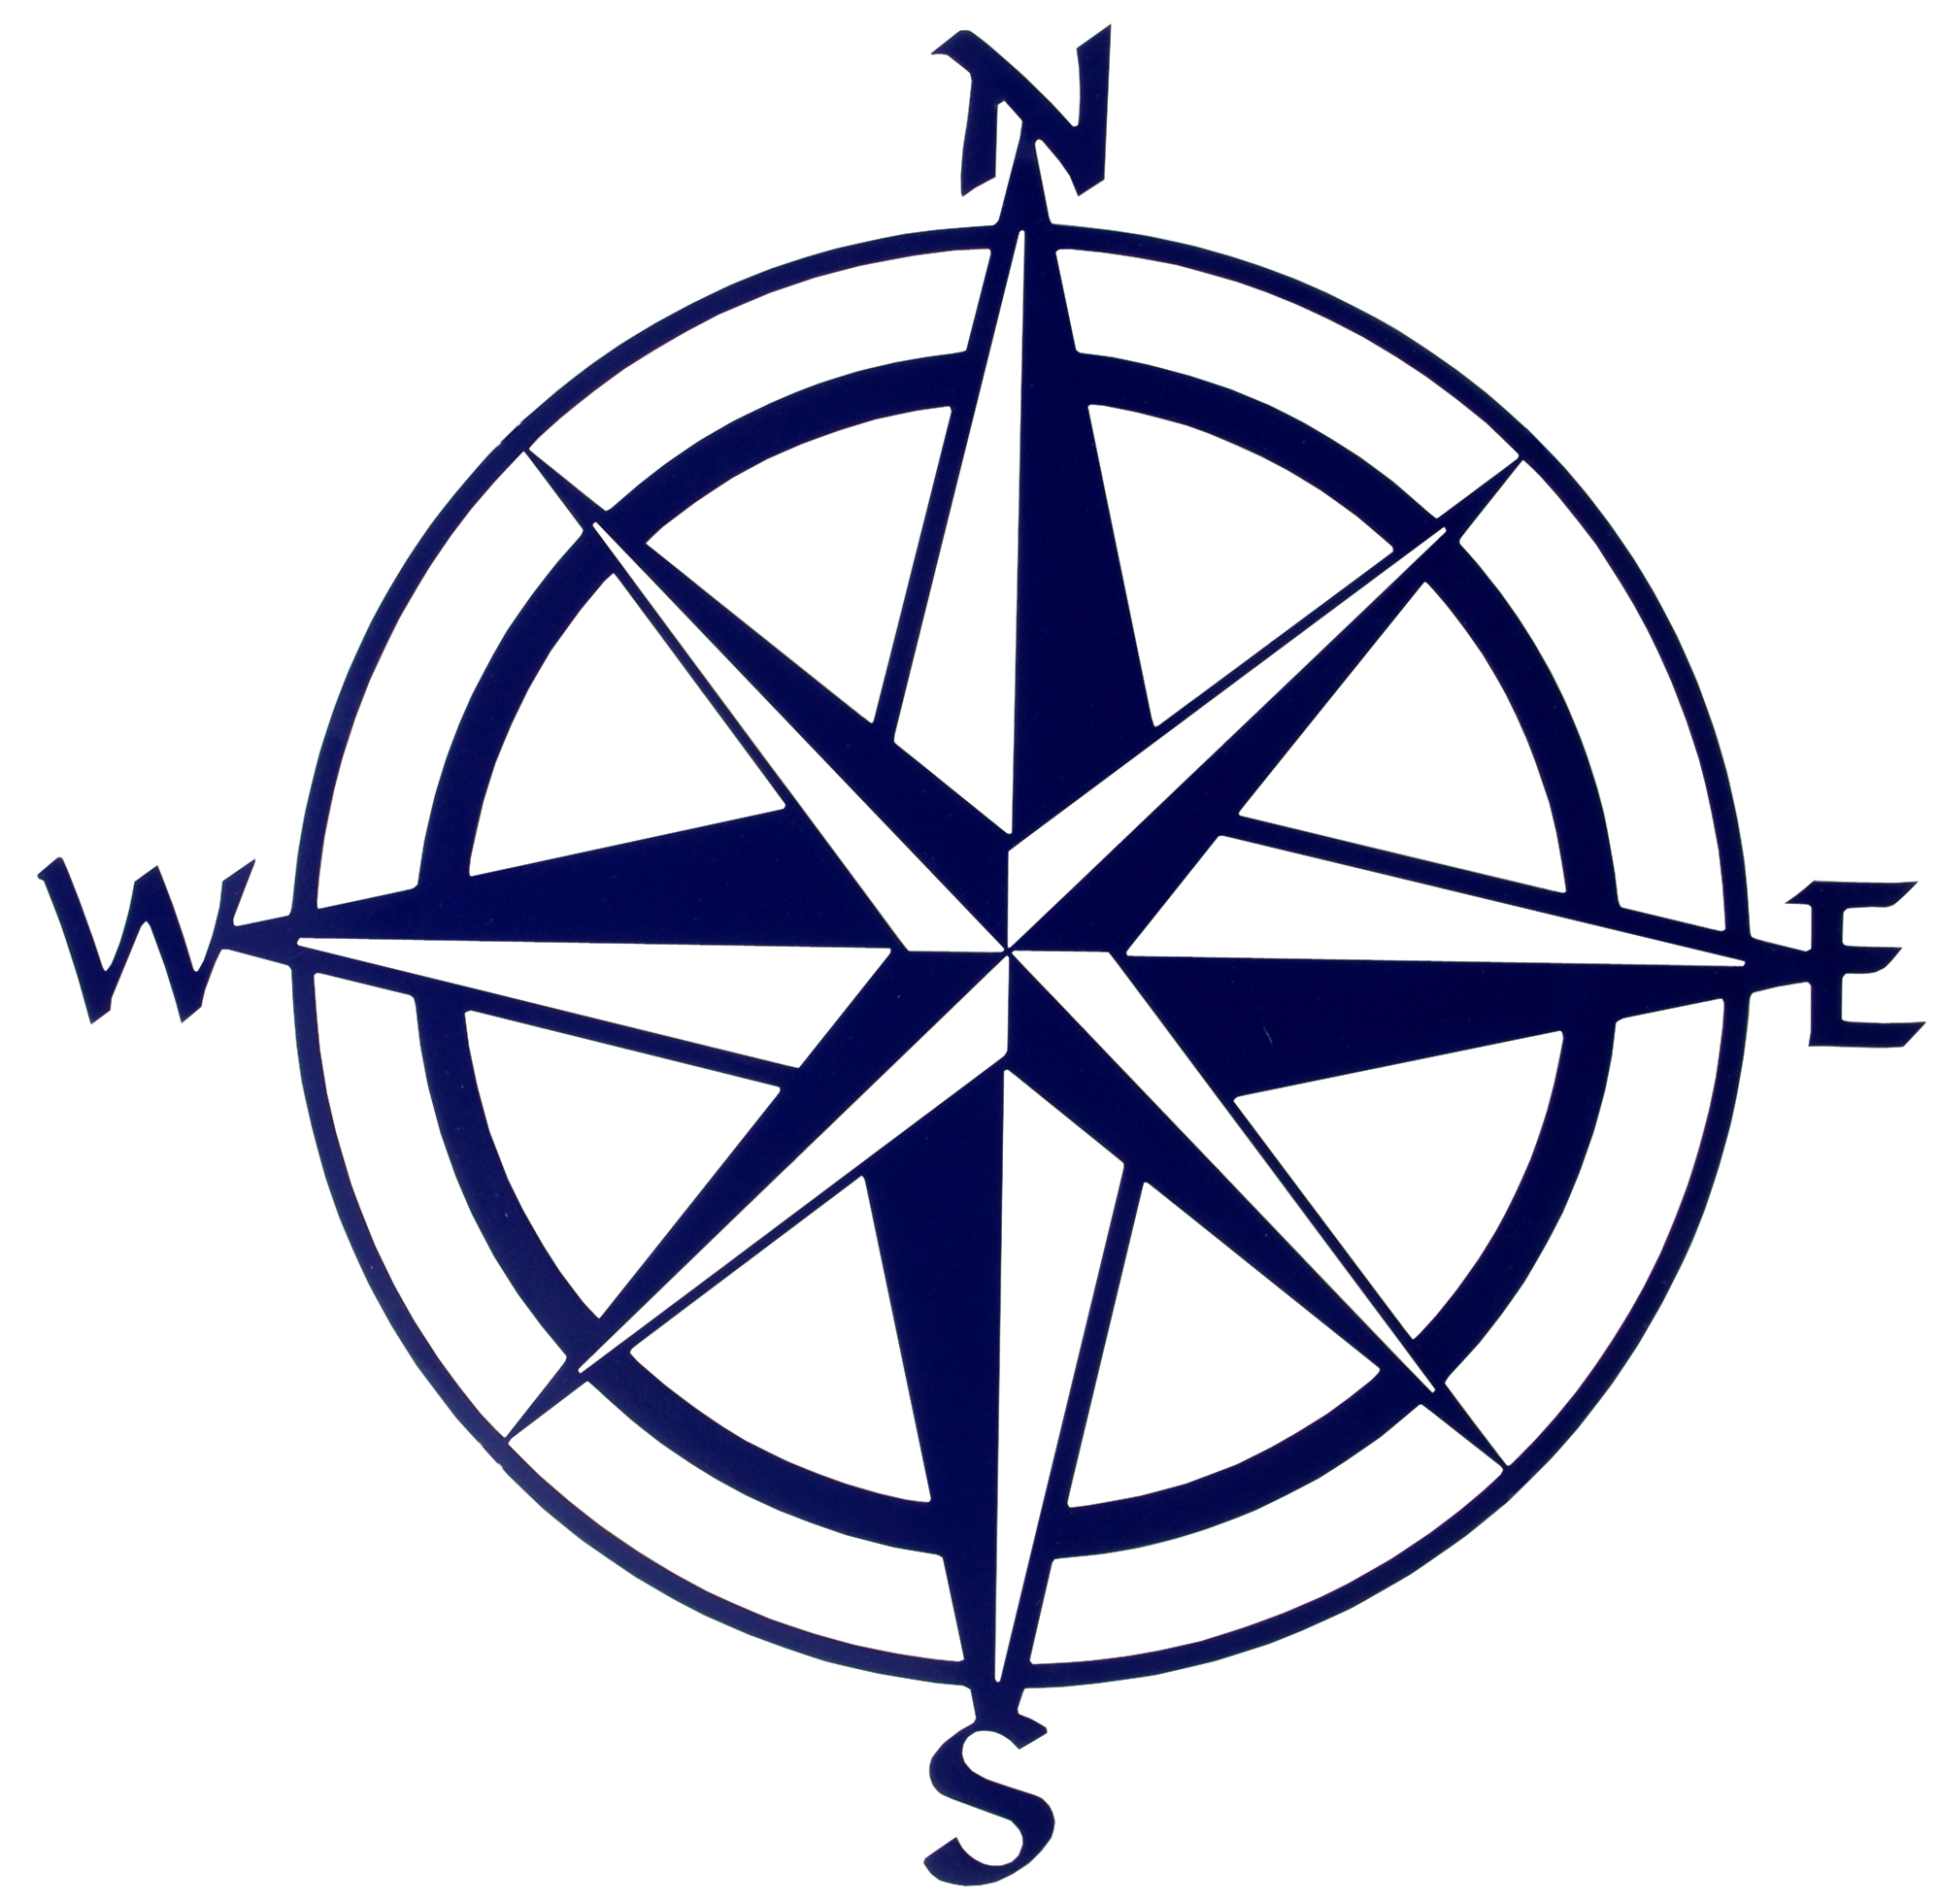 Compass Rose - Cliparts.co